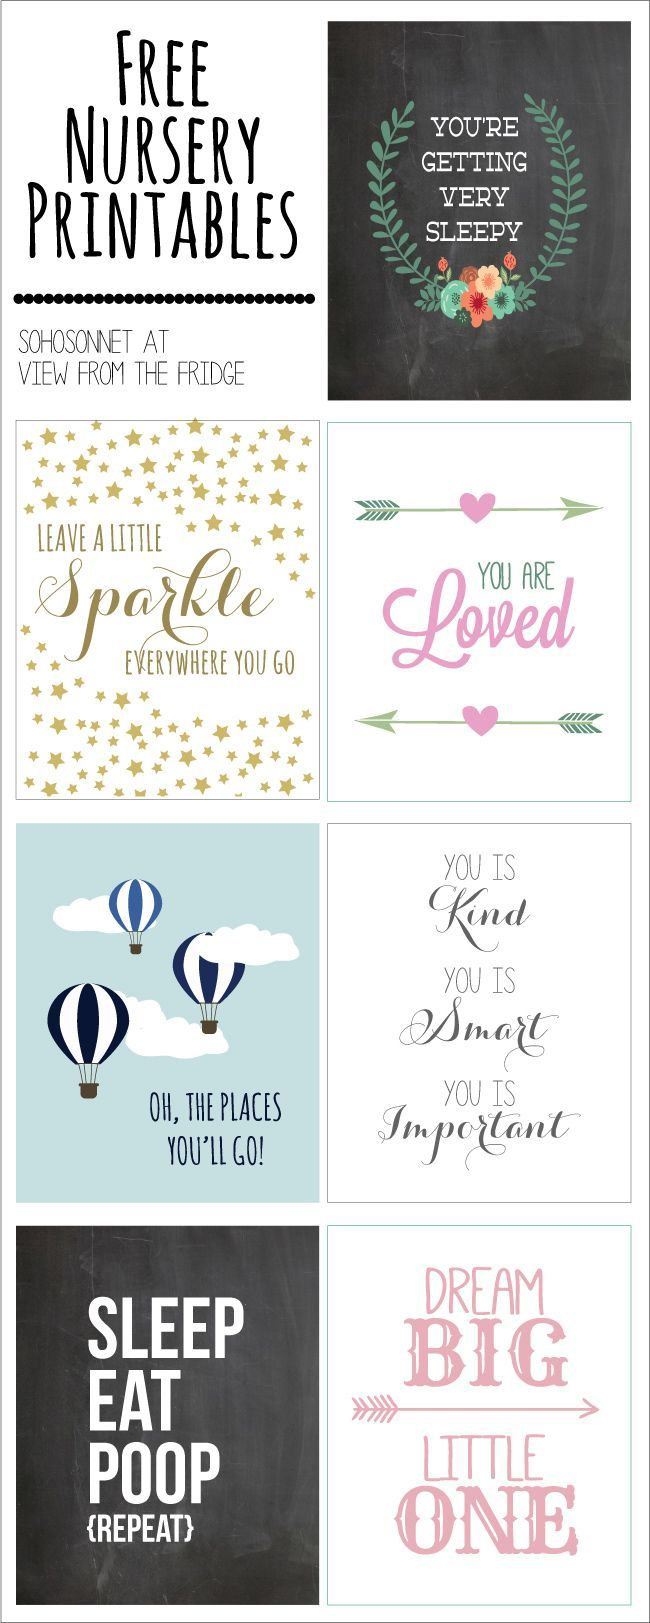 Free Nursery Printables {SohoSonnet Guest Post} - View From The Fridge